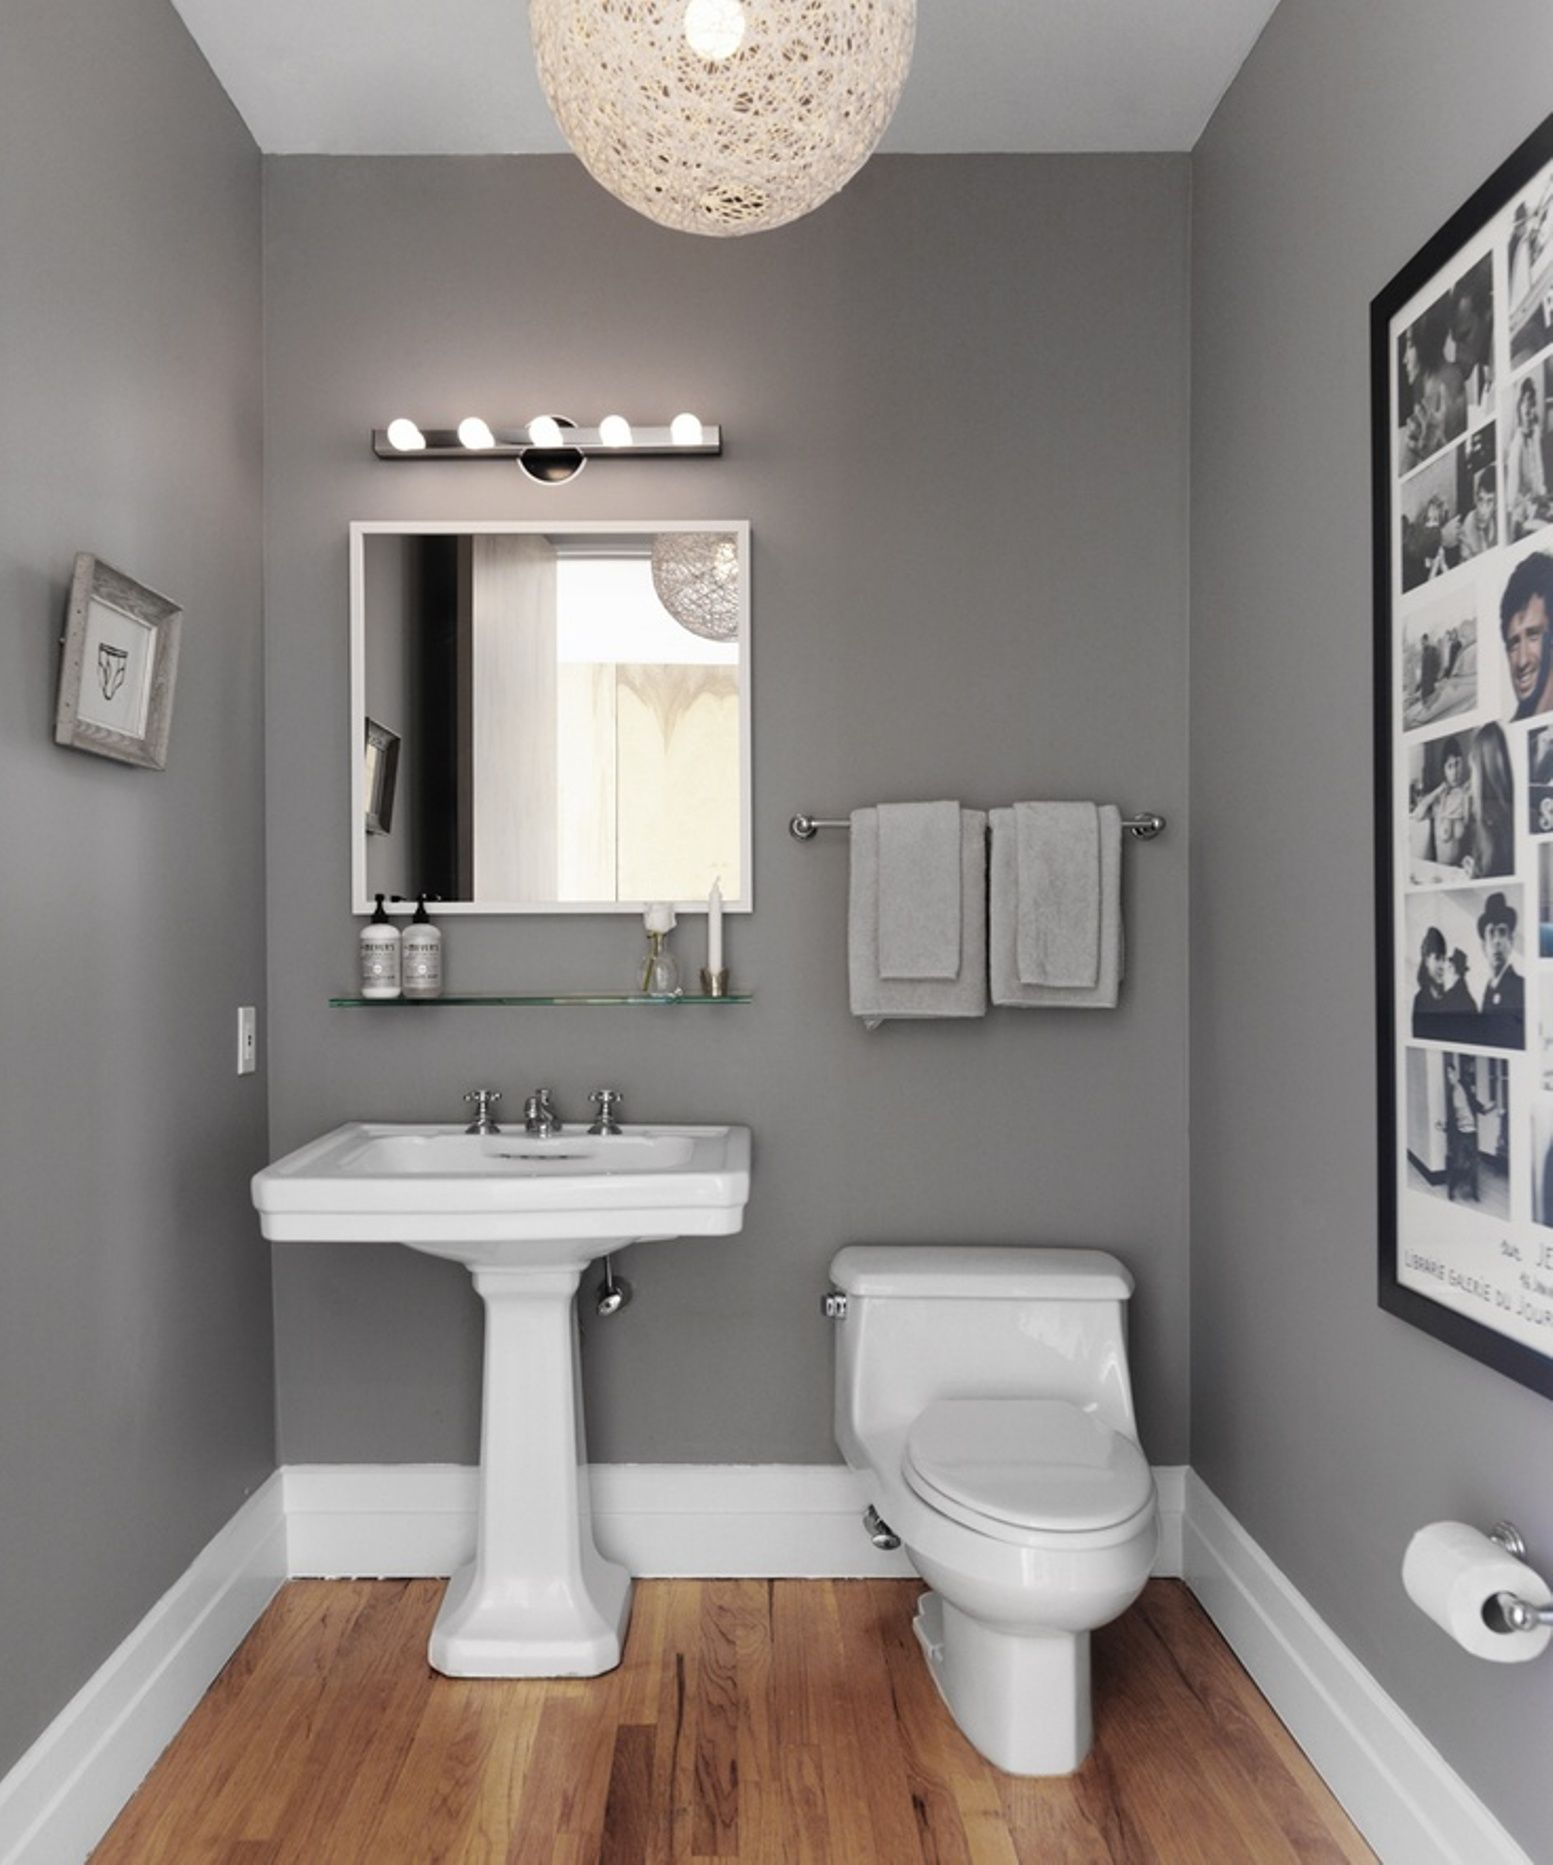 Narrow Grey Bathroom Ideas With White Bath Fixtures Grey Bathroom Ideas Inspiration Bathroom Wall Colors Bathroom Colors Bathroom Color